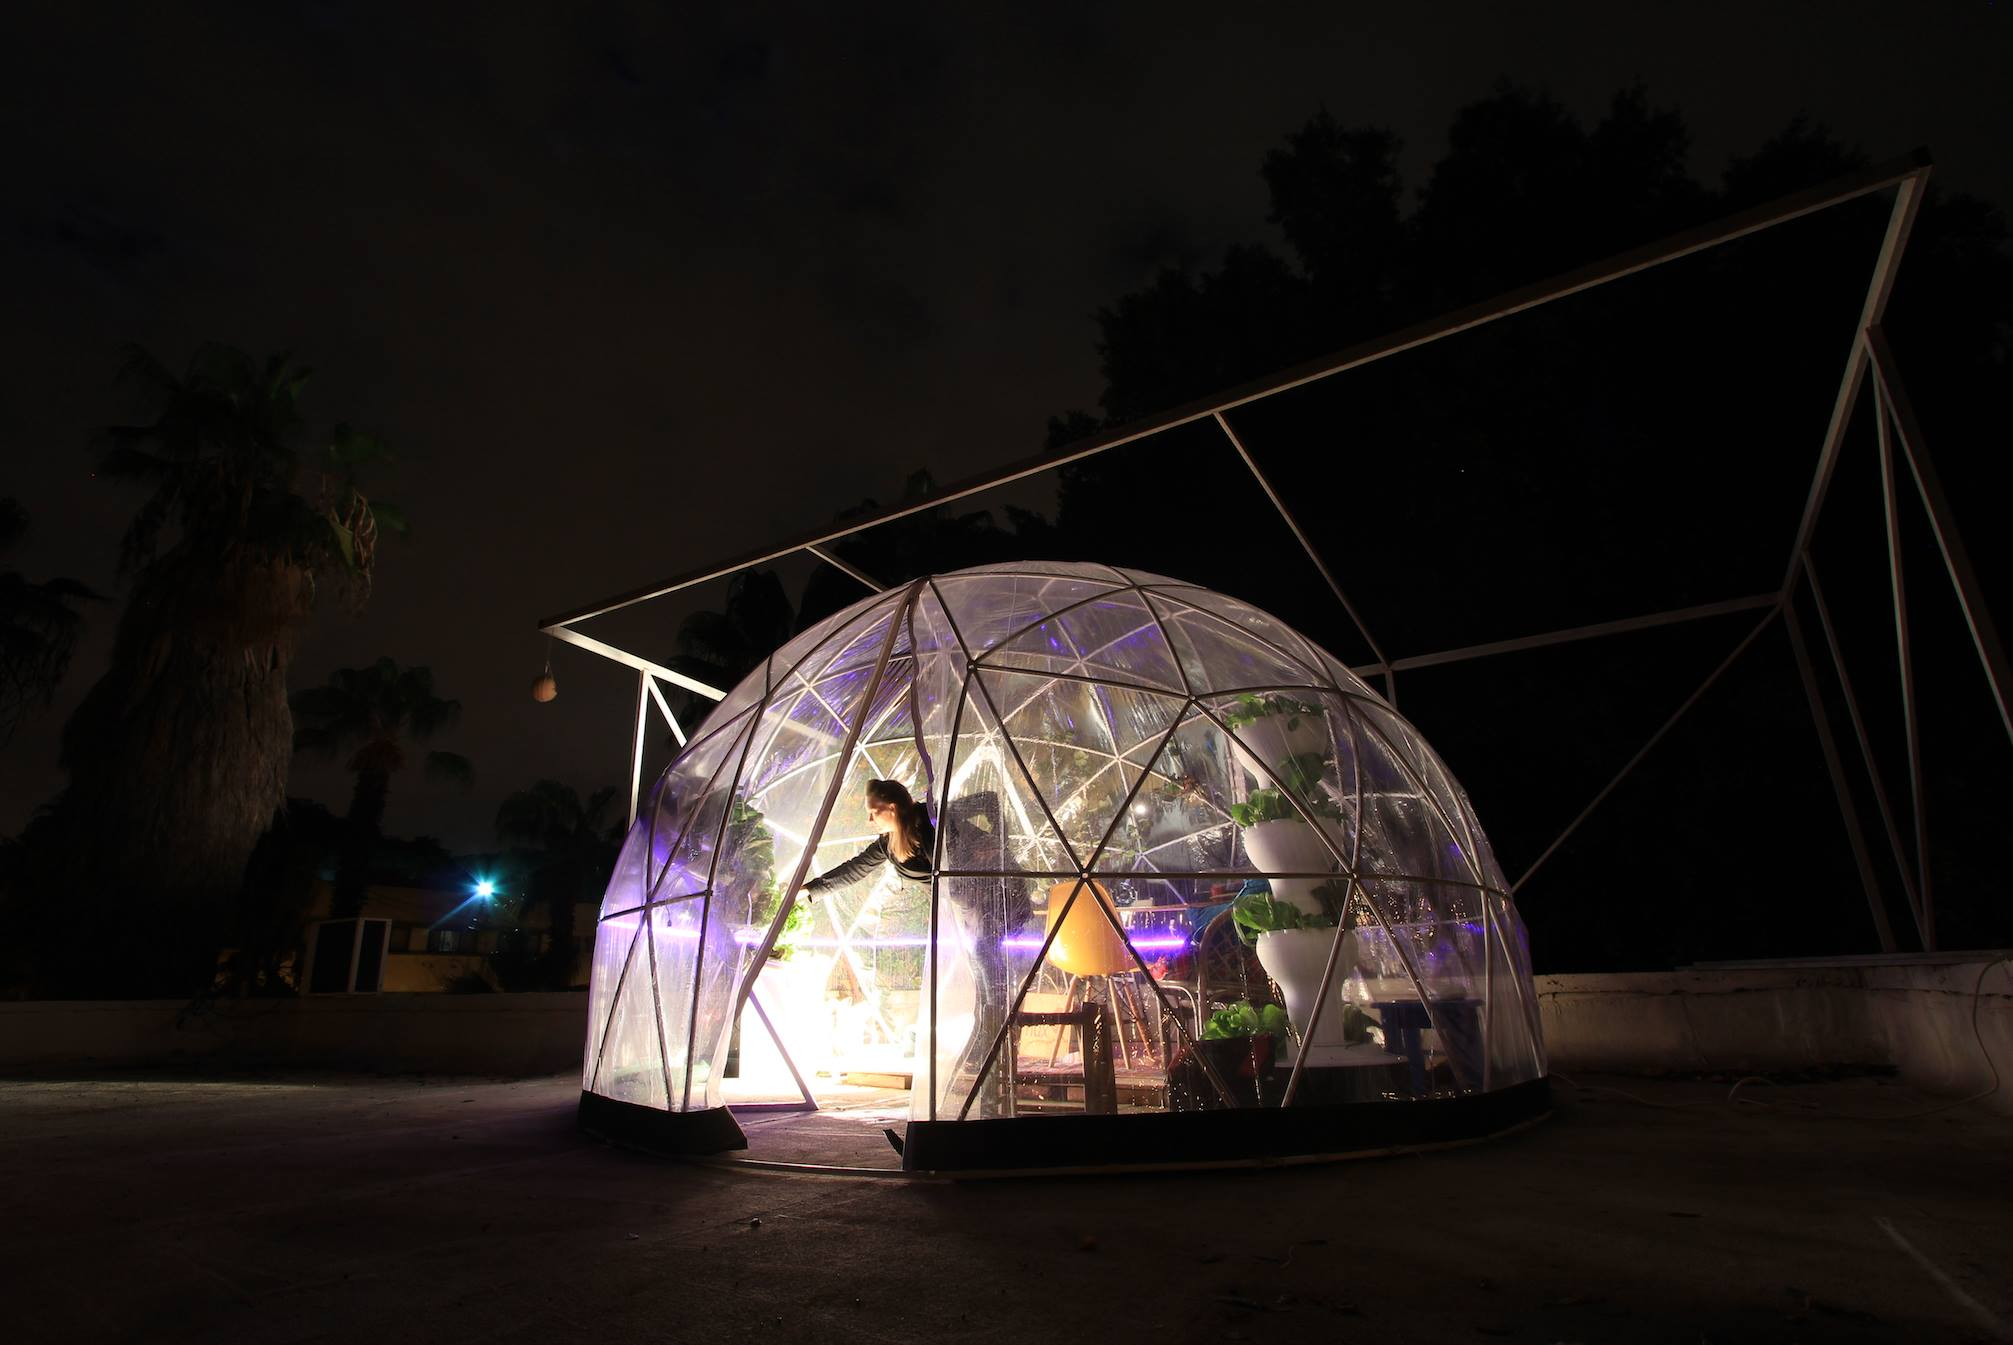 eddy flux biodome grow food on mars